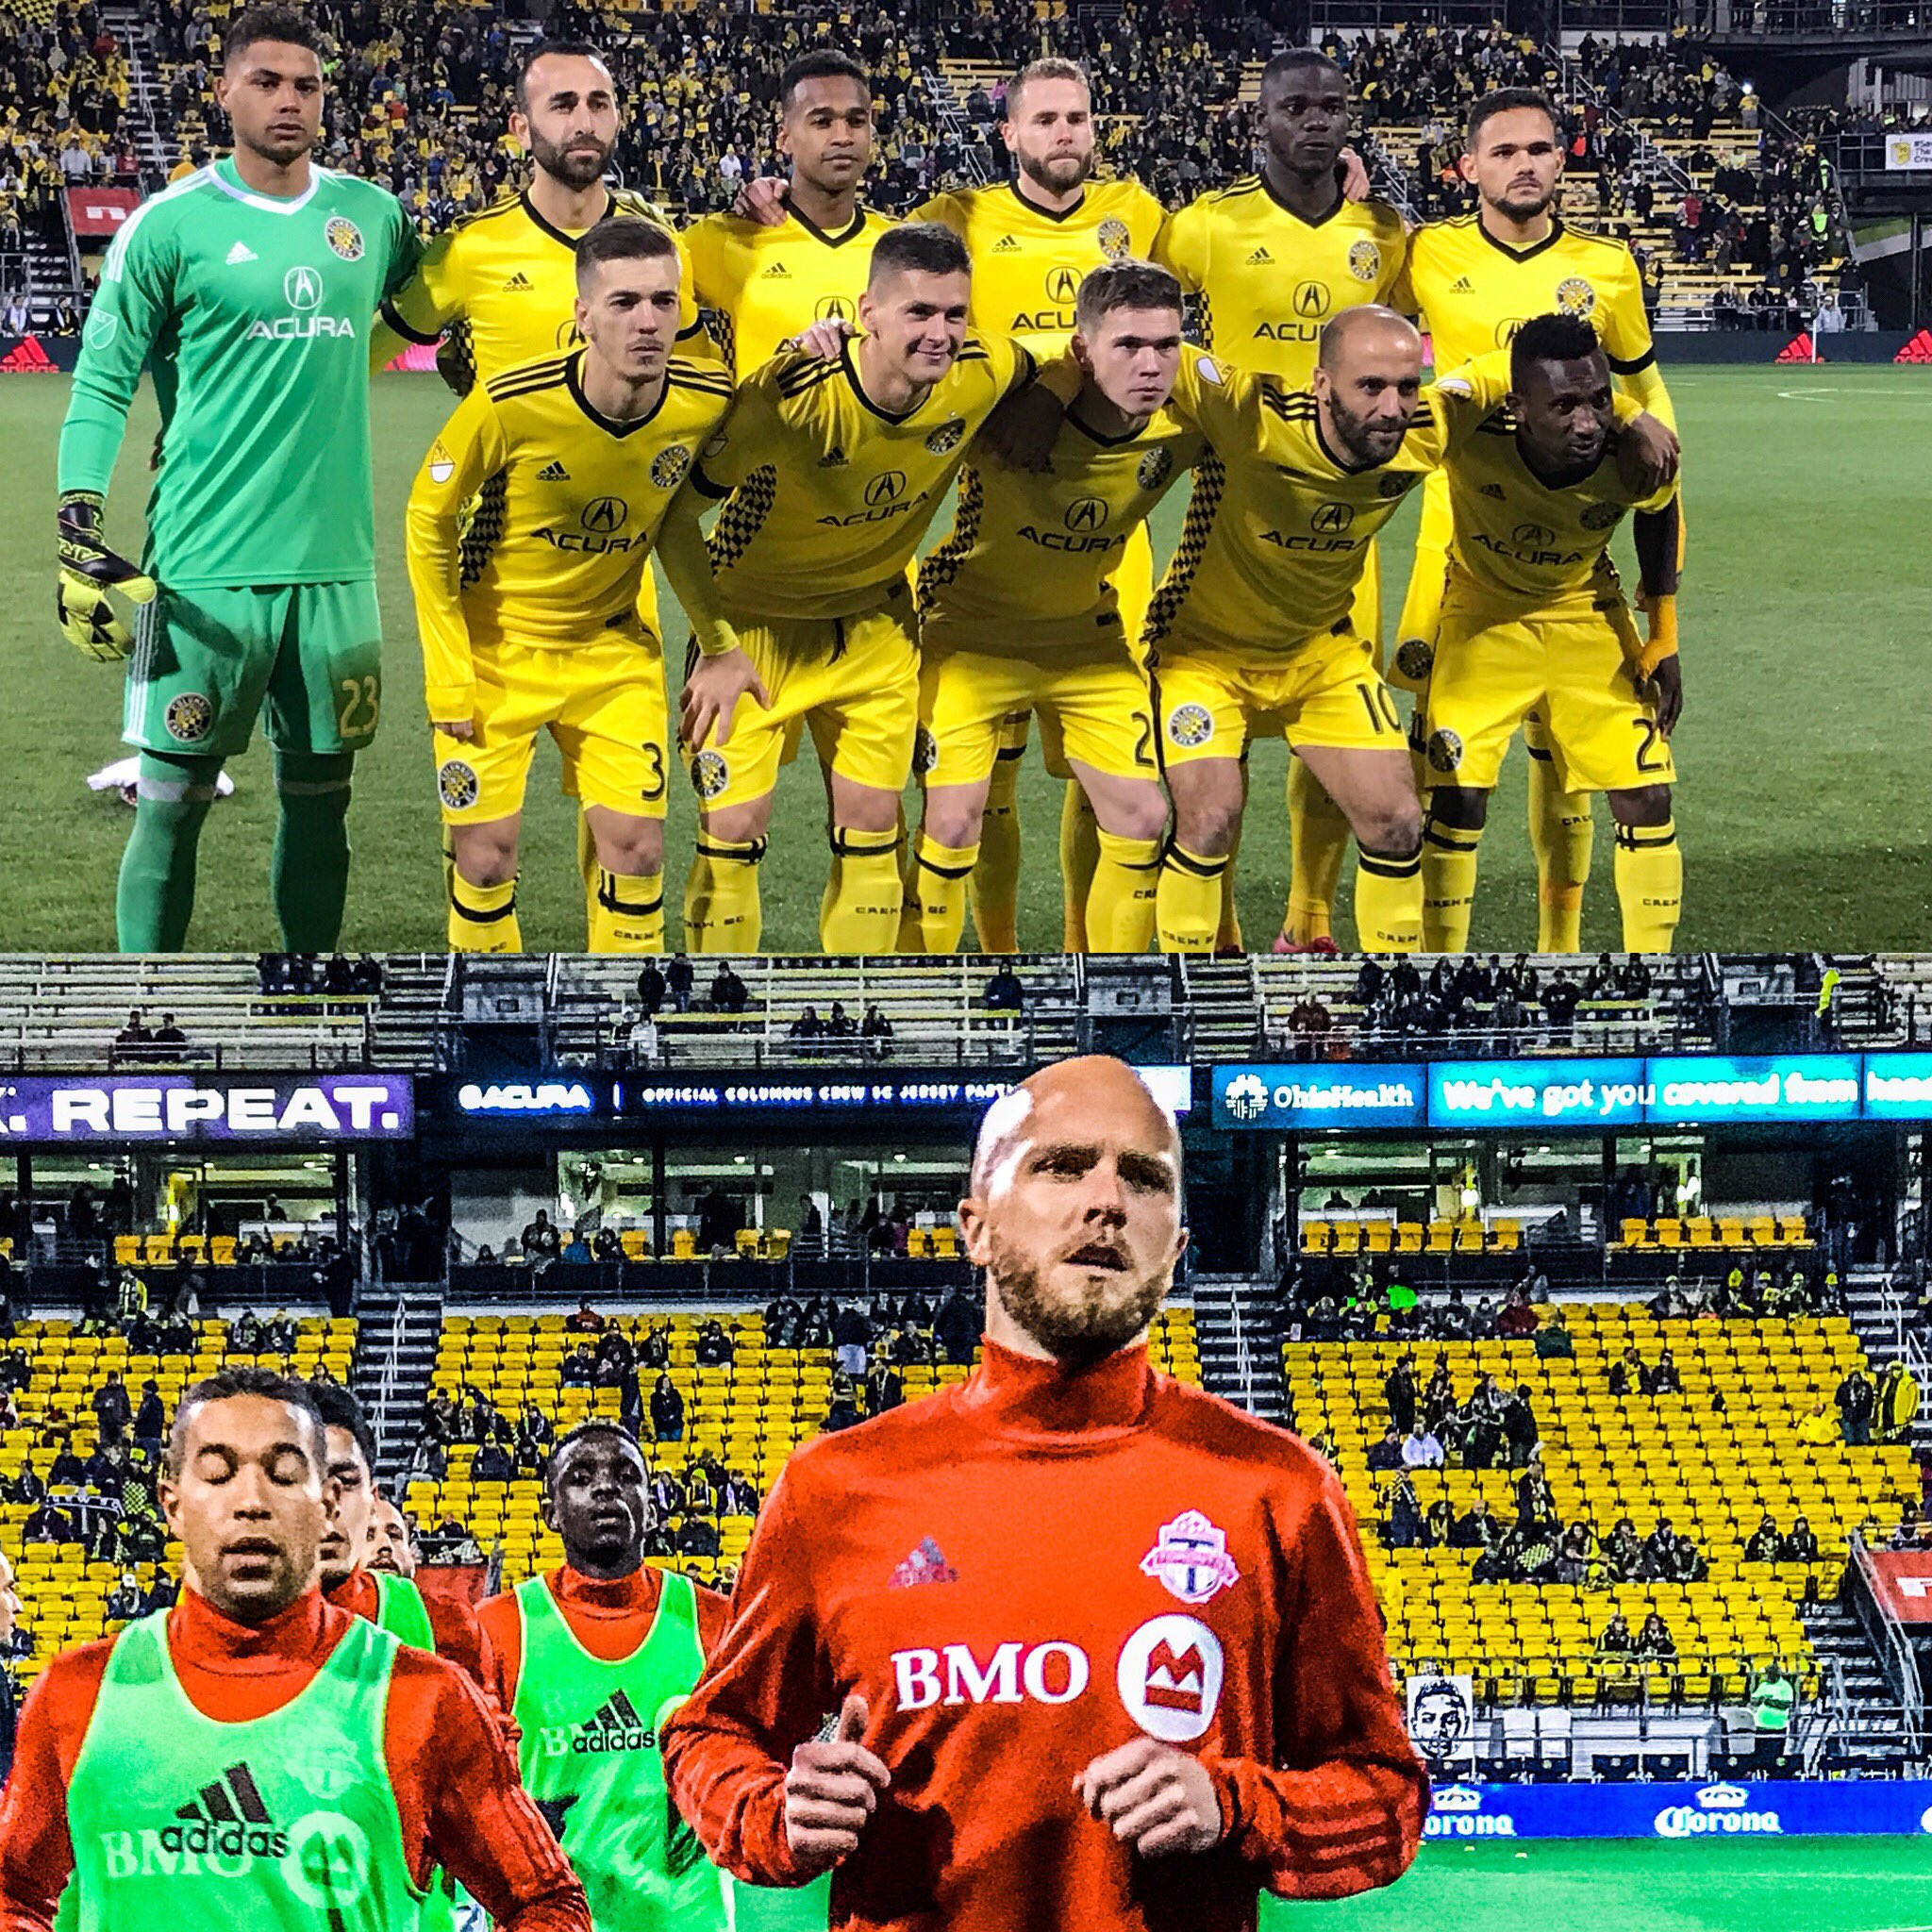 It's time. #CLBvTOR on ESPN. https://t.co/PZ2cPeSLUL